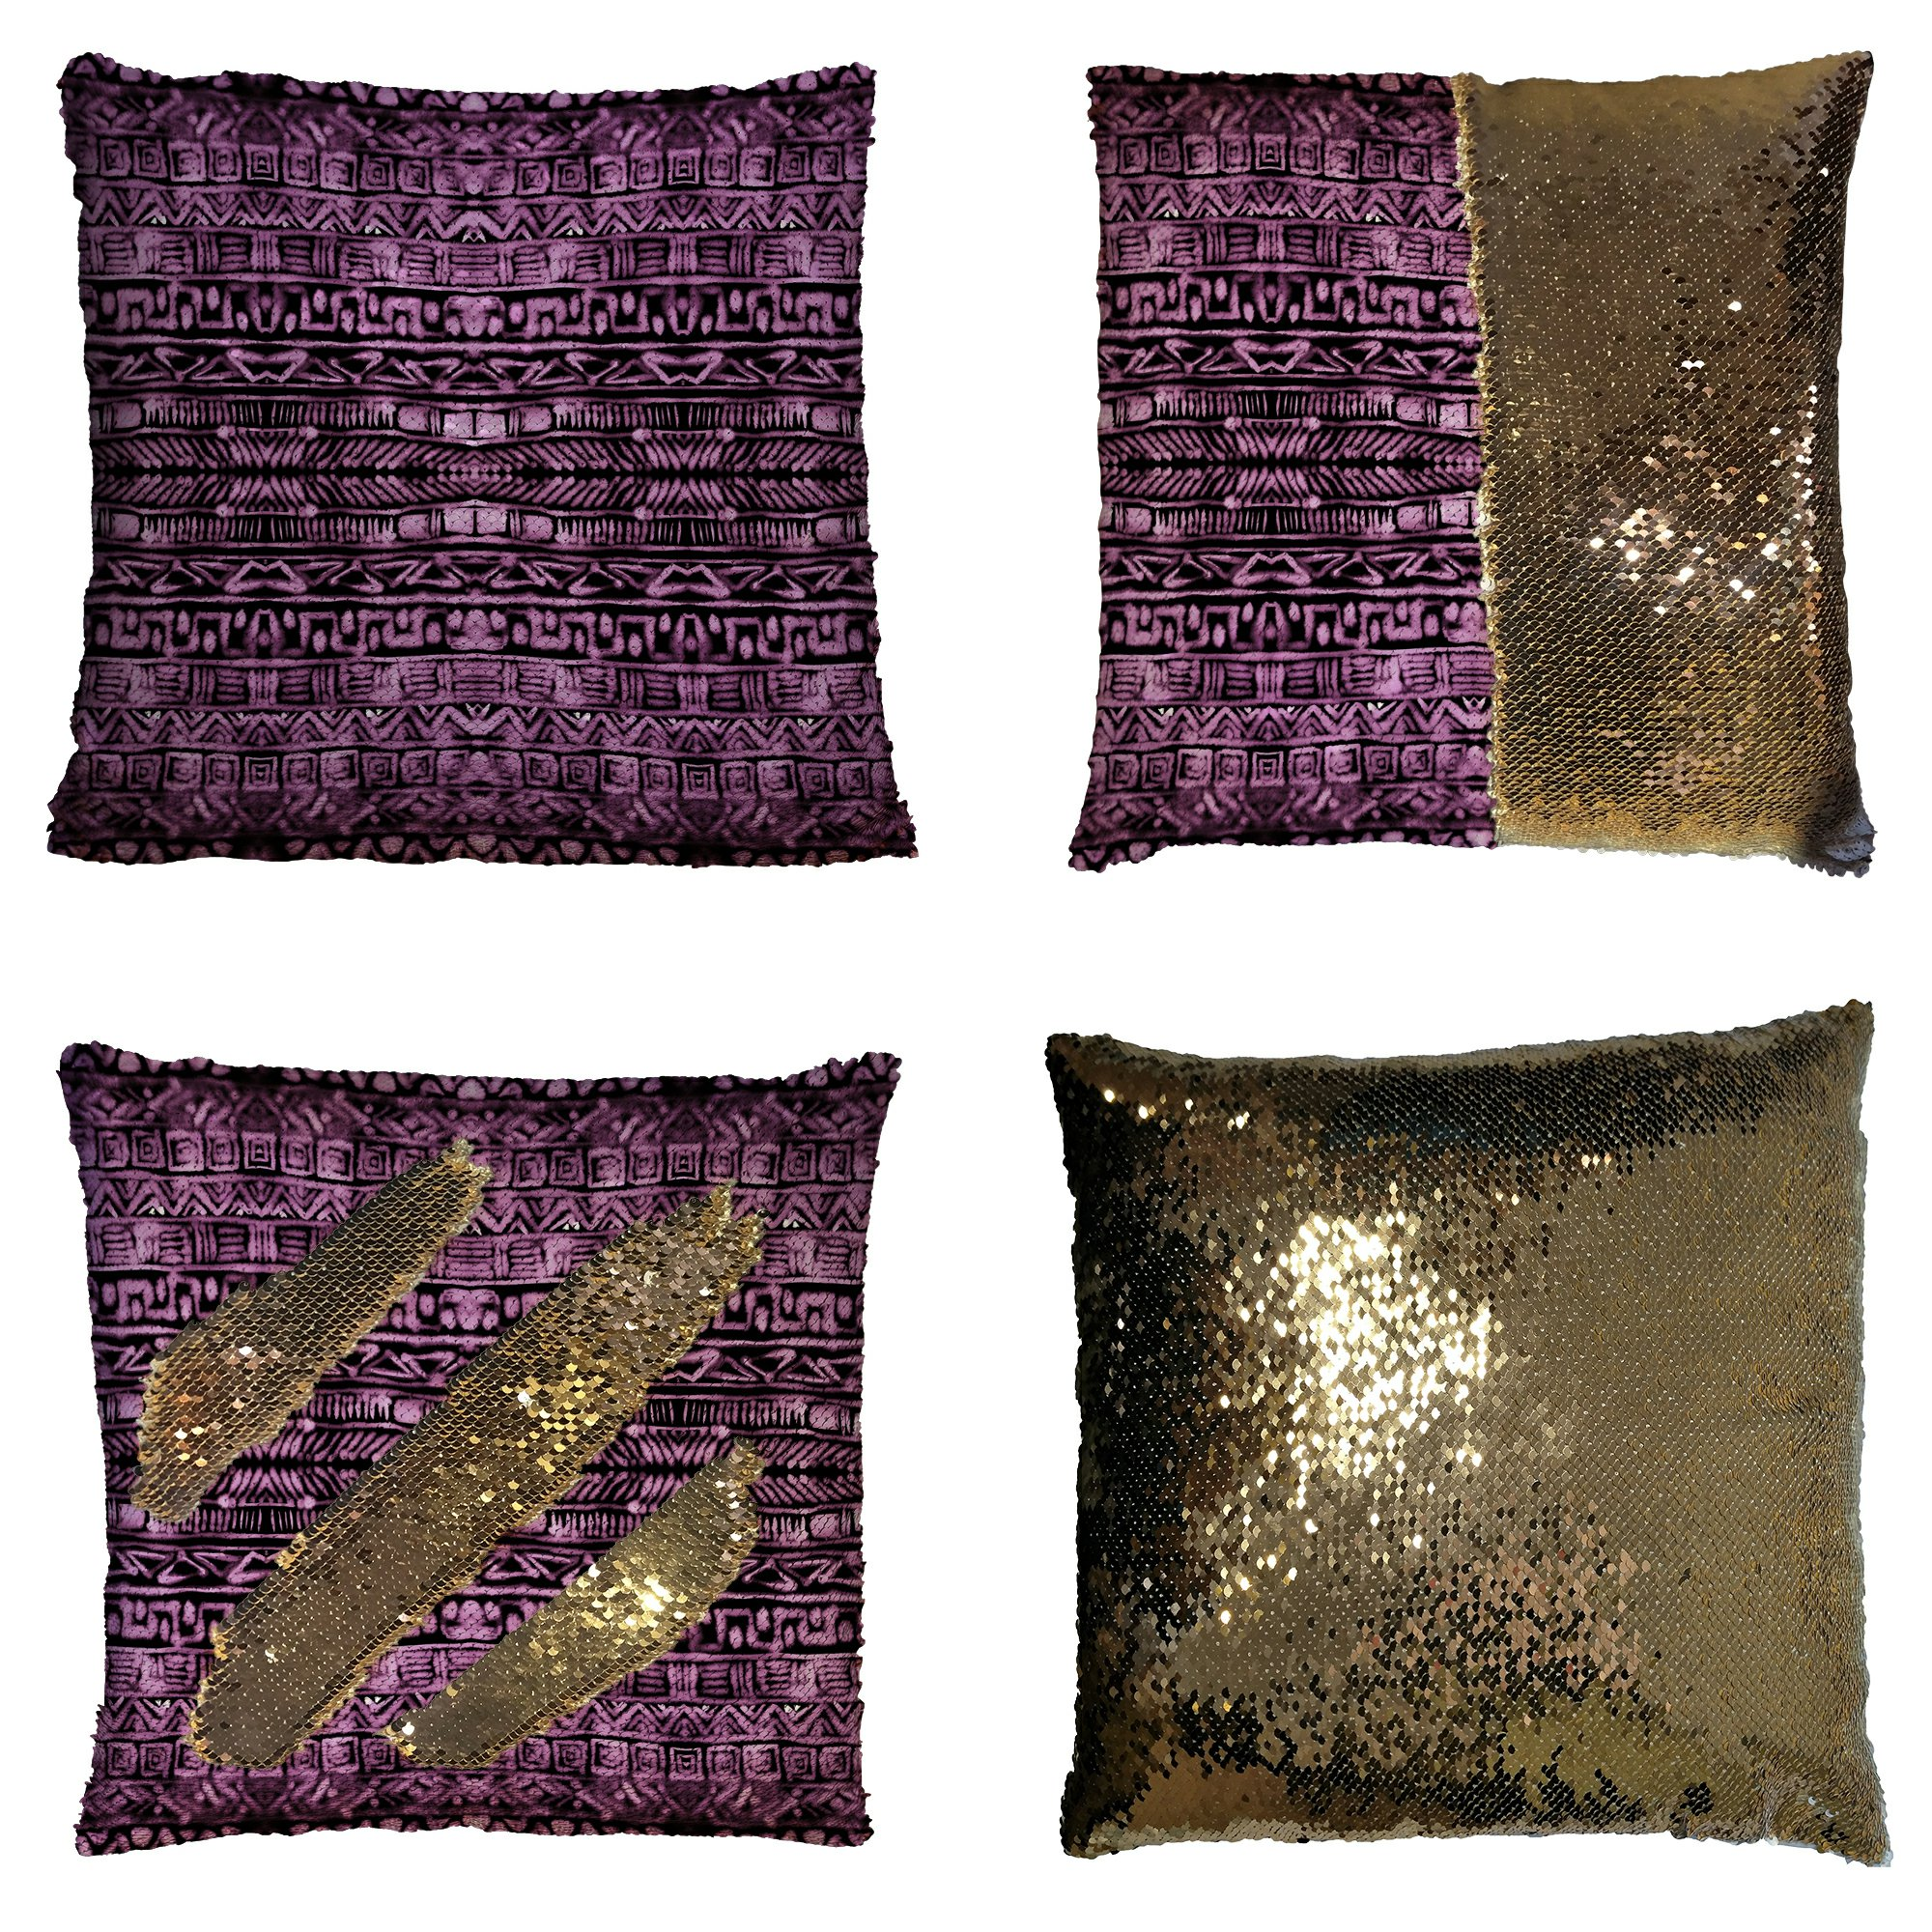 GCKG Watercolor Pillowcase, Abstract Aztec Pattern Purple Reversible Mermaid Sequin Pillow Case Home Decor Cushion Cover 16x16 inches